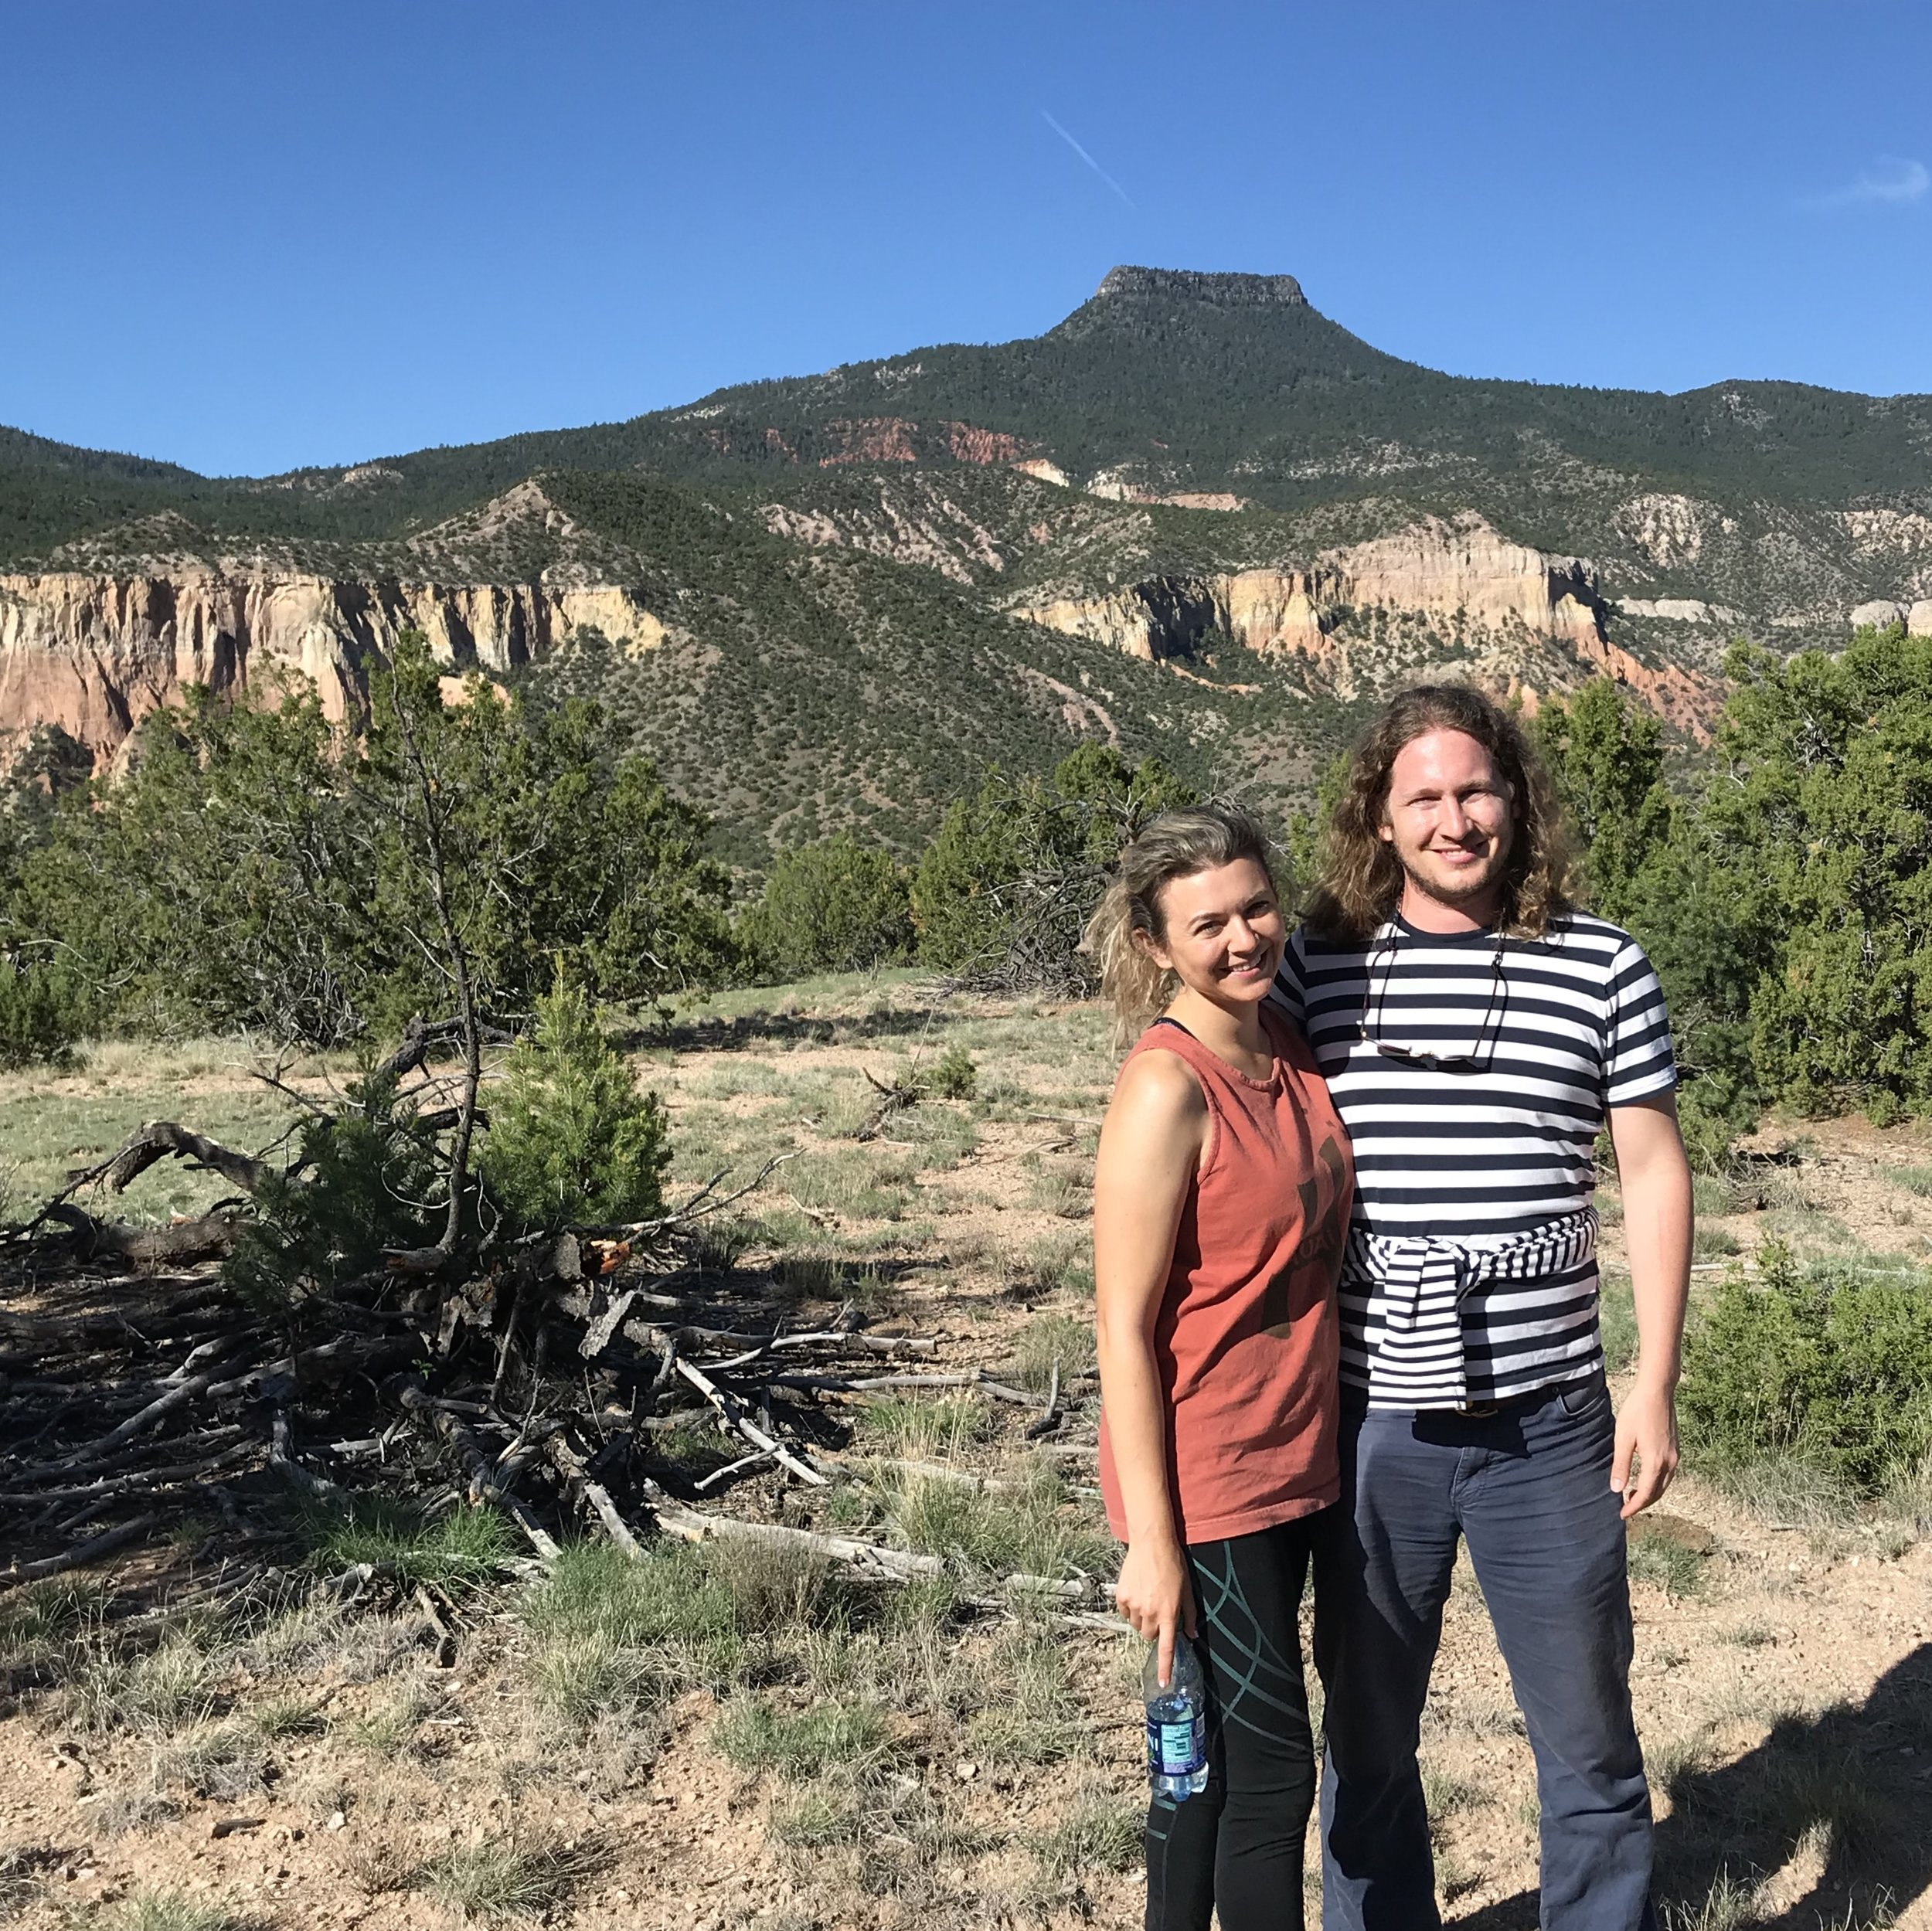 My partner and me on a real estate trip to New Mexico | 2018